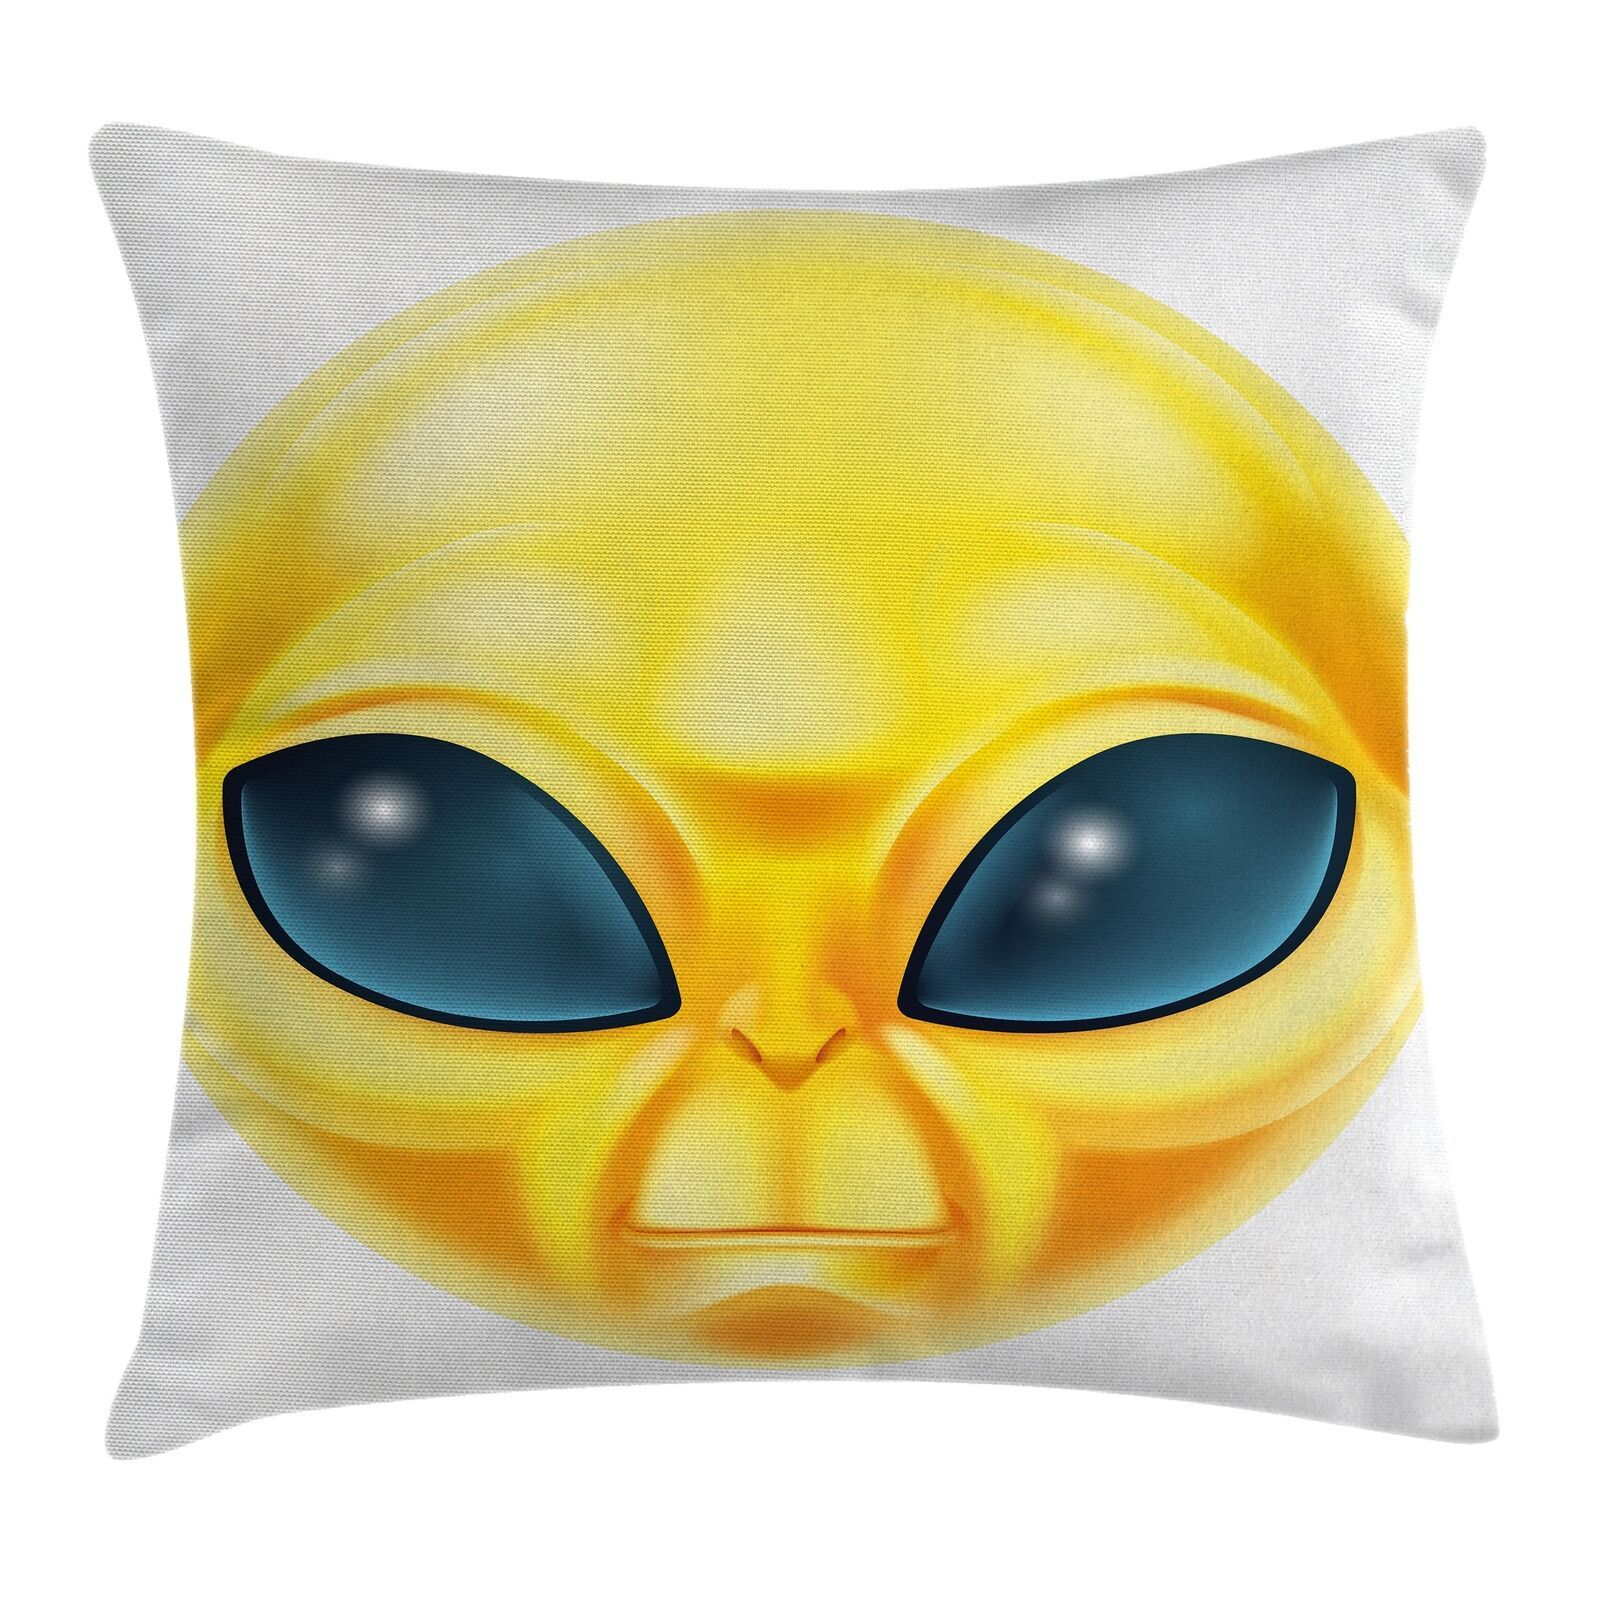 Colorful Emoji Throw Pillow Cases Cushion Covers Home Decor 8 Sizes Emoji Ideas Of Emoji Emoji Emojiart Colorf Throw Pillow Cases Emoji Pillows Emoji